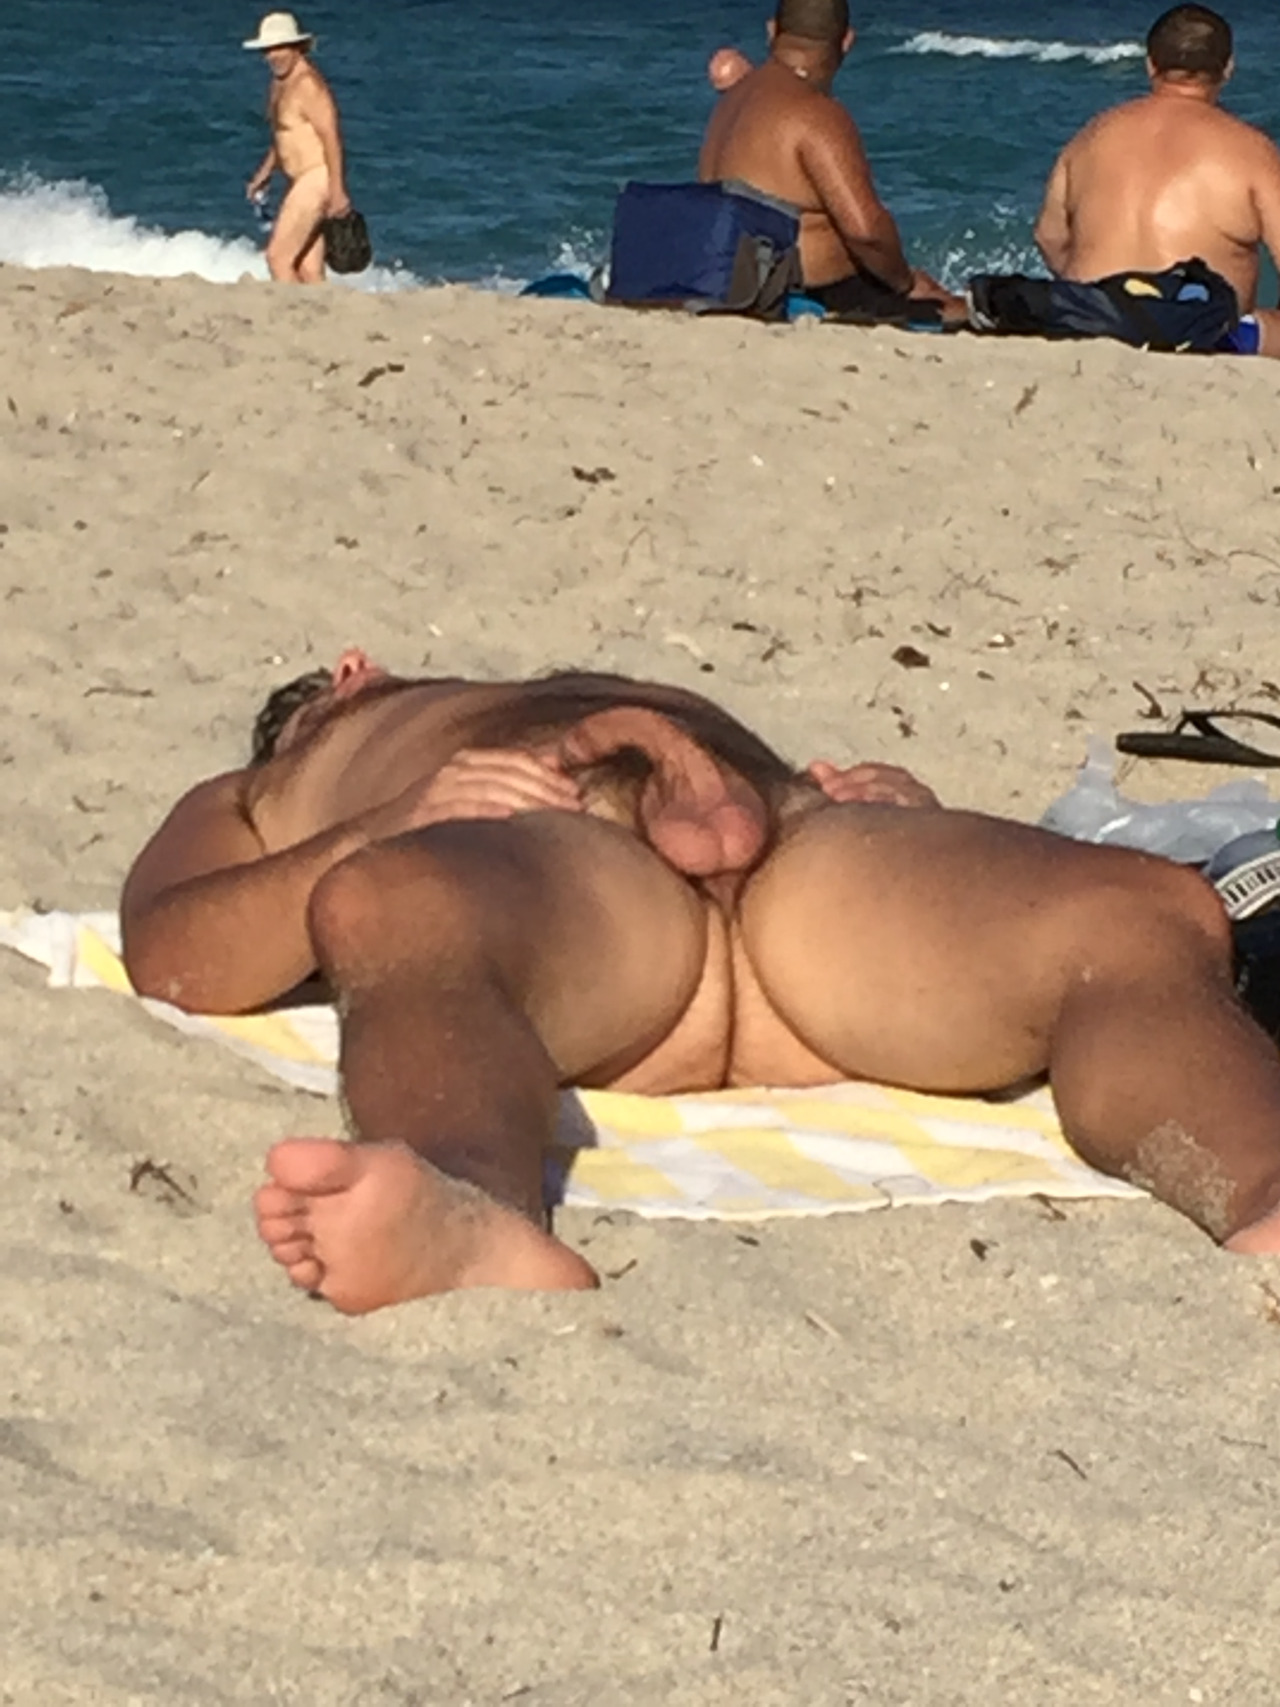 boners at the beach